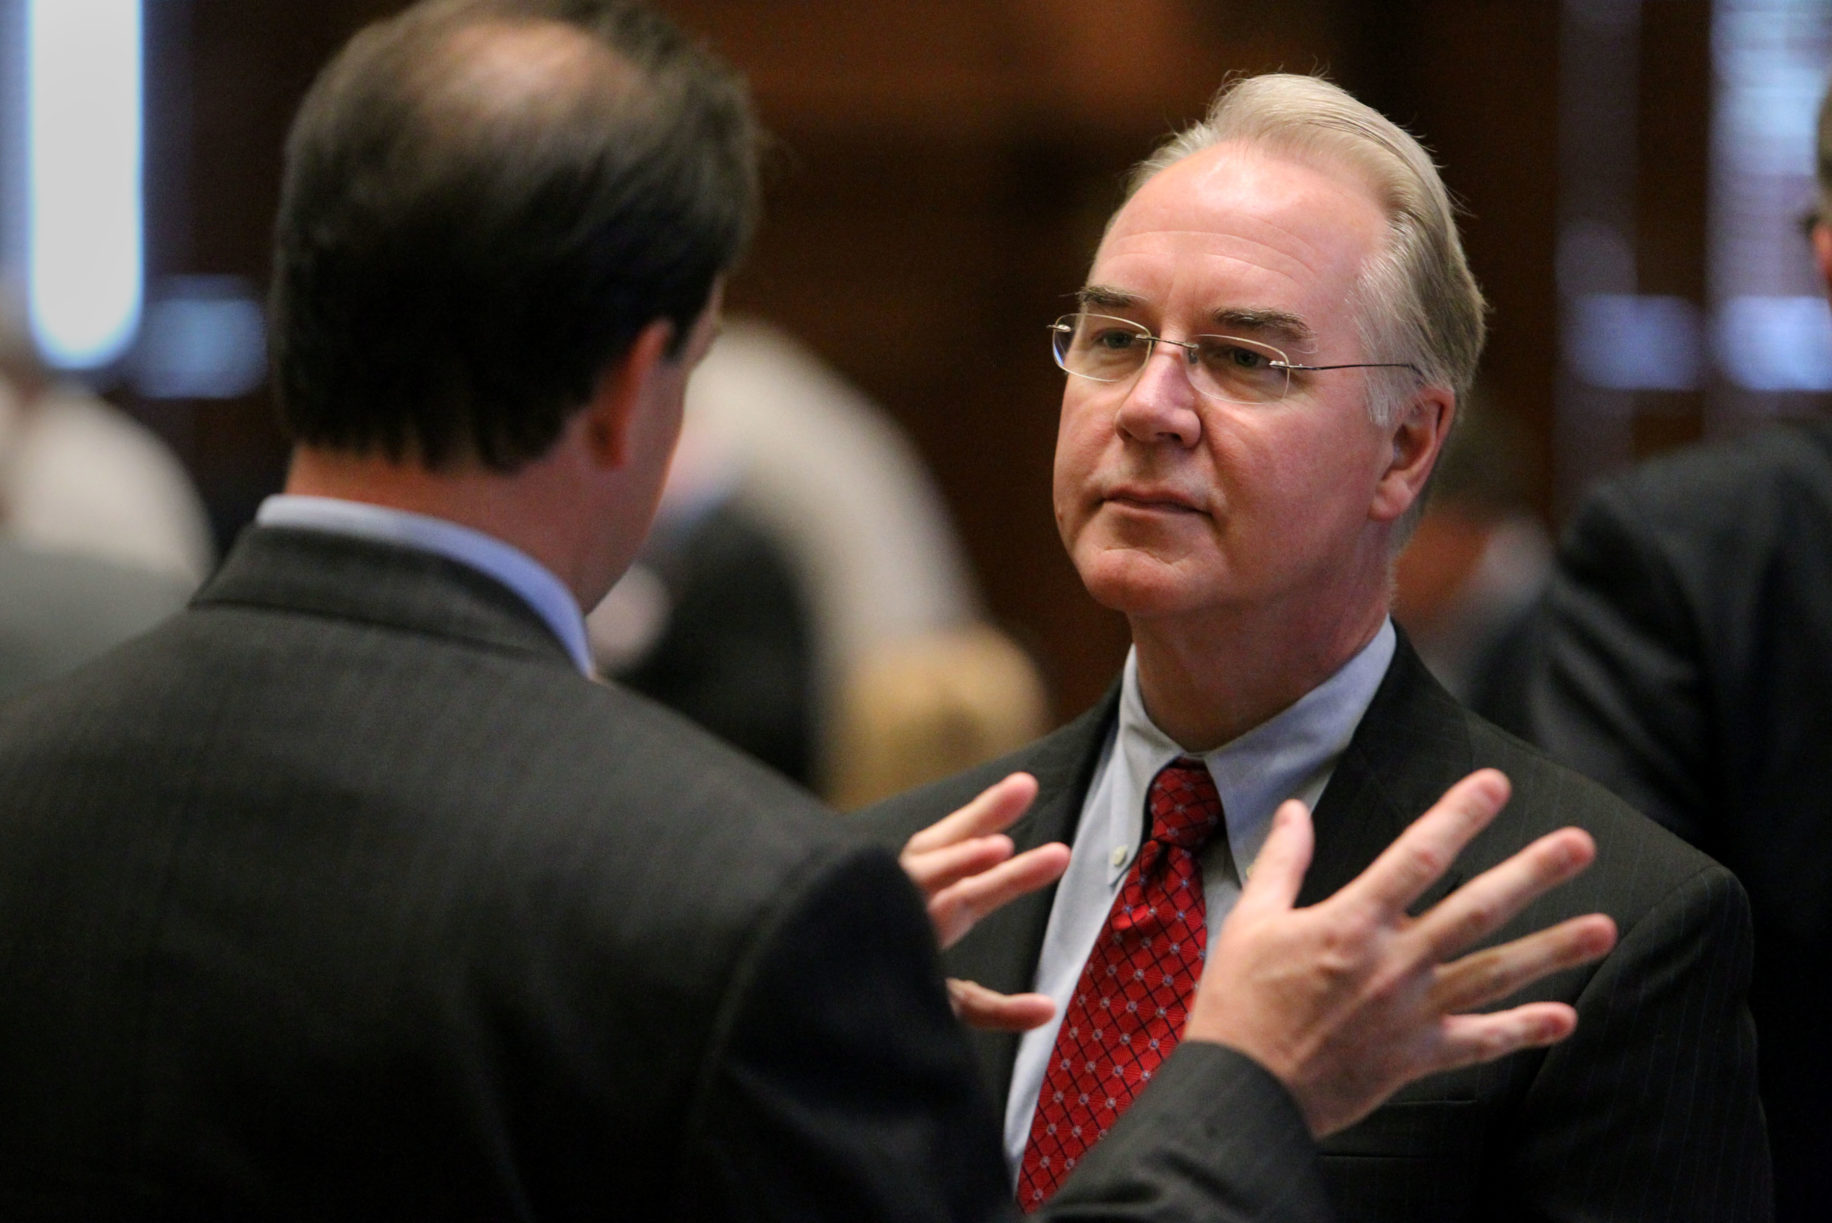 U.S. Rep. Tom Price, R-Roswell, Georgia, is Donald Trump's choice for Secretary of the Department of Health and Human Services.